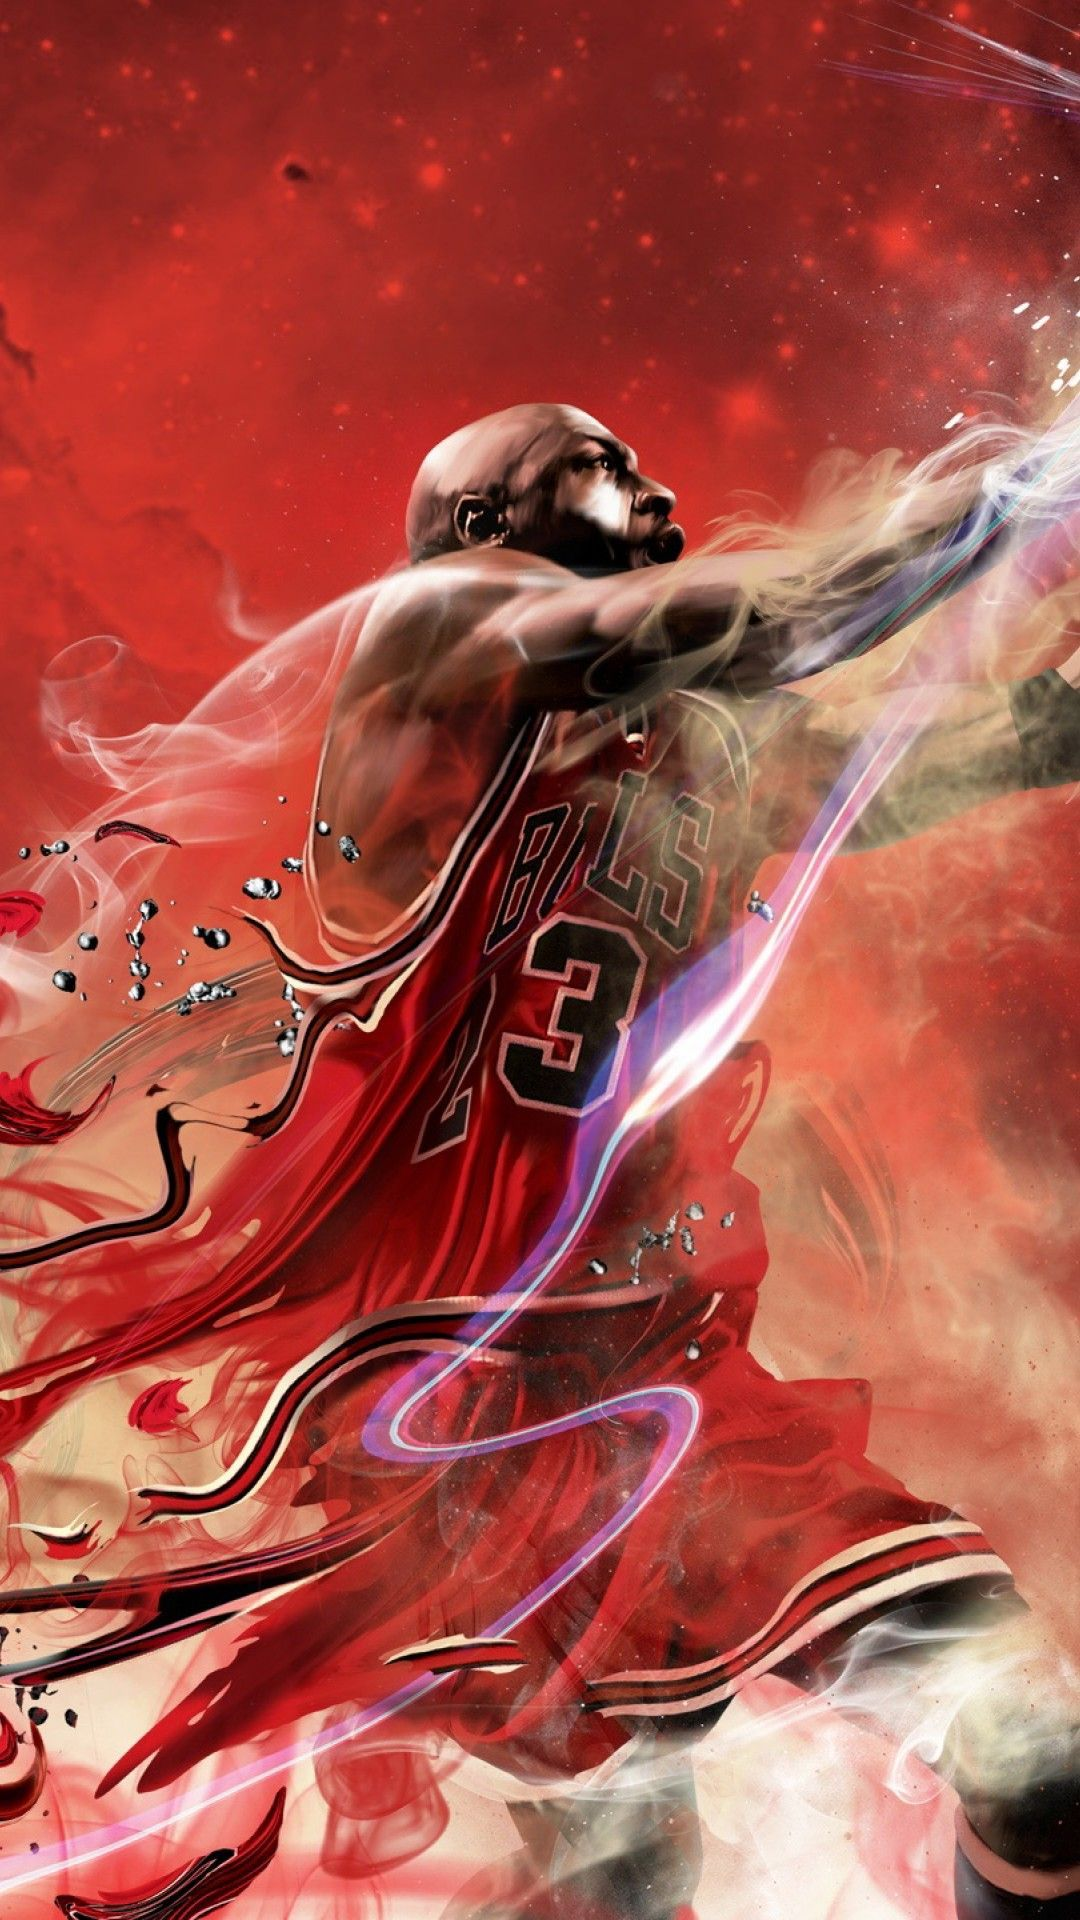 Jordan Pictures » Hupages » Download Iphone Wallpapers